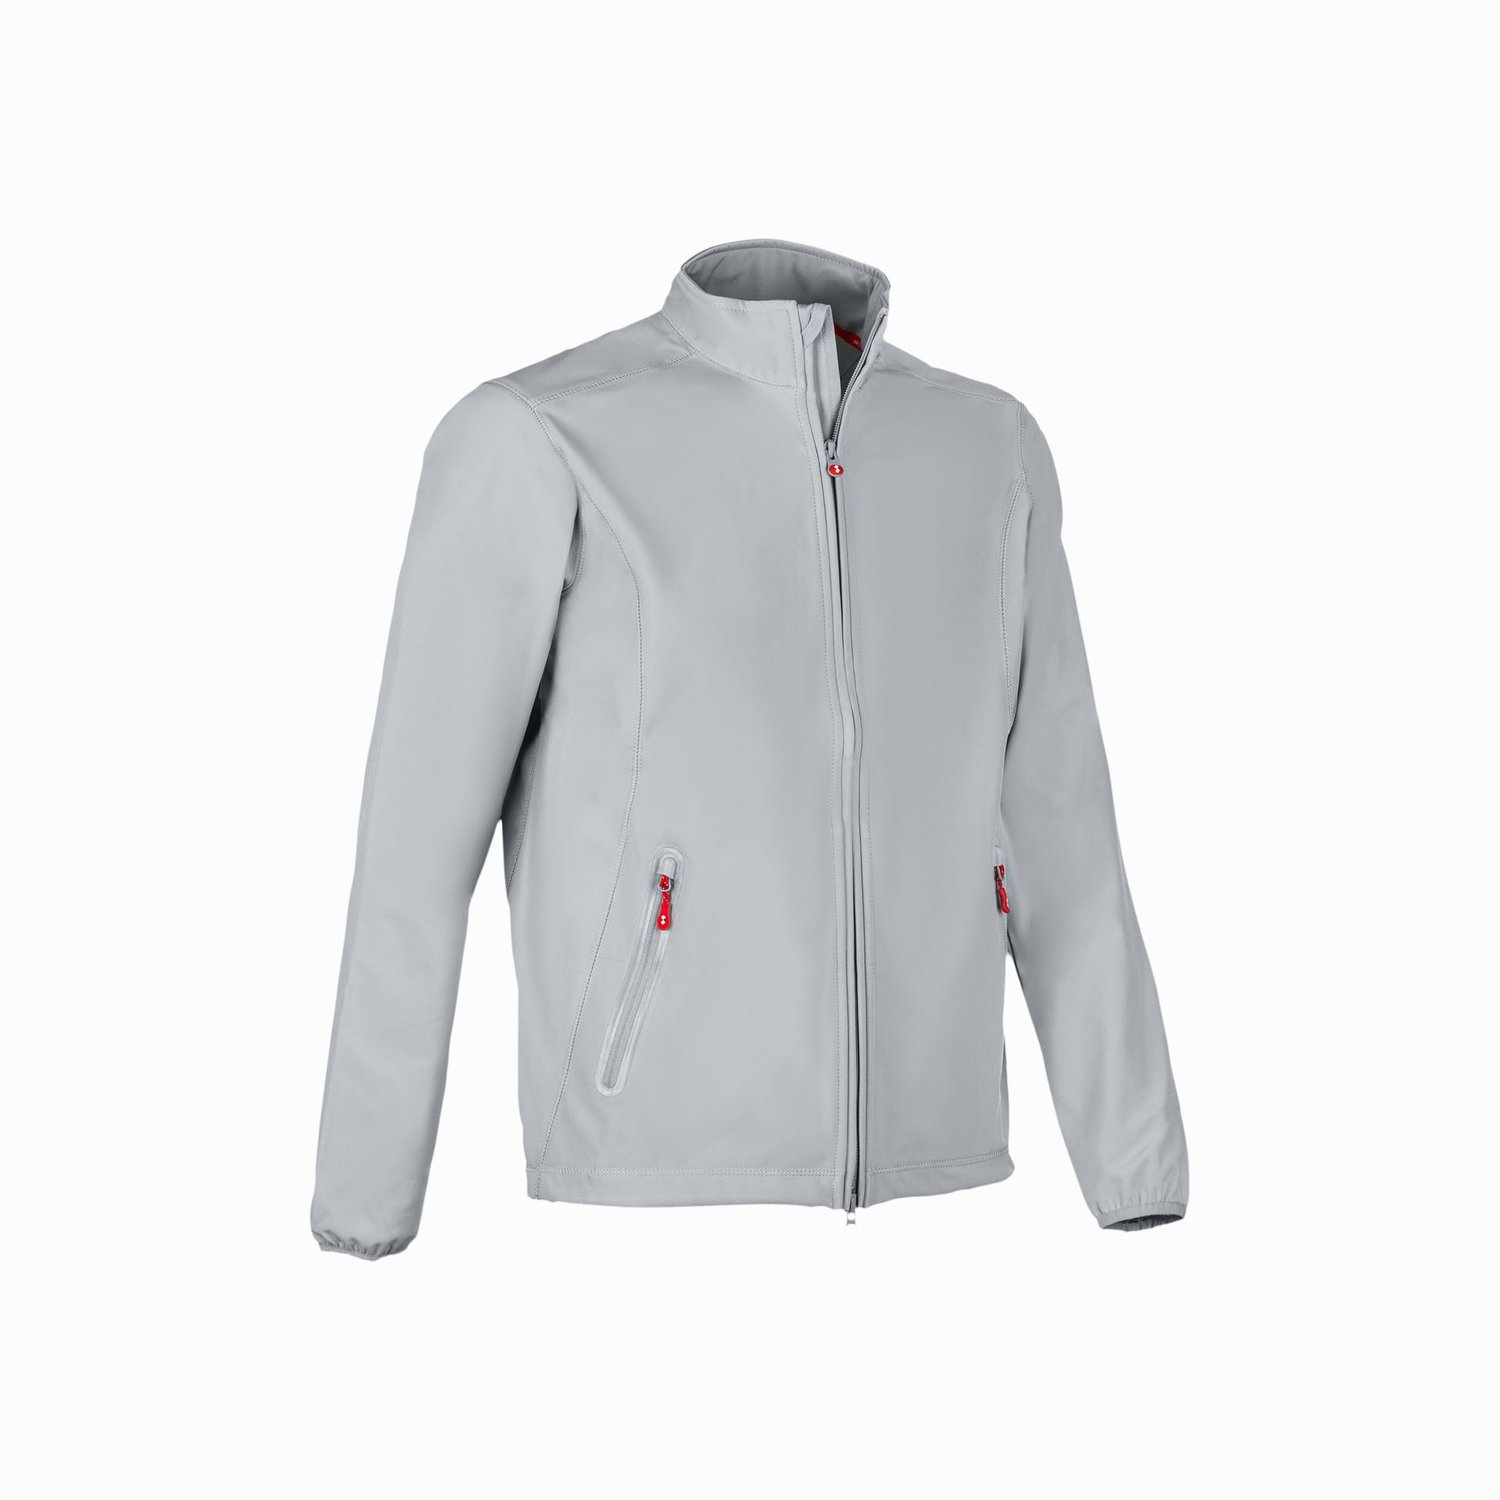 Hampton Jkt 2.1 - Grey